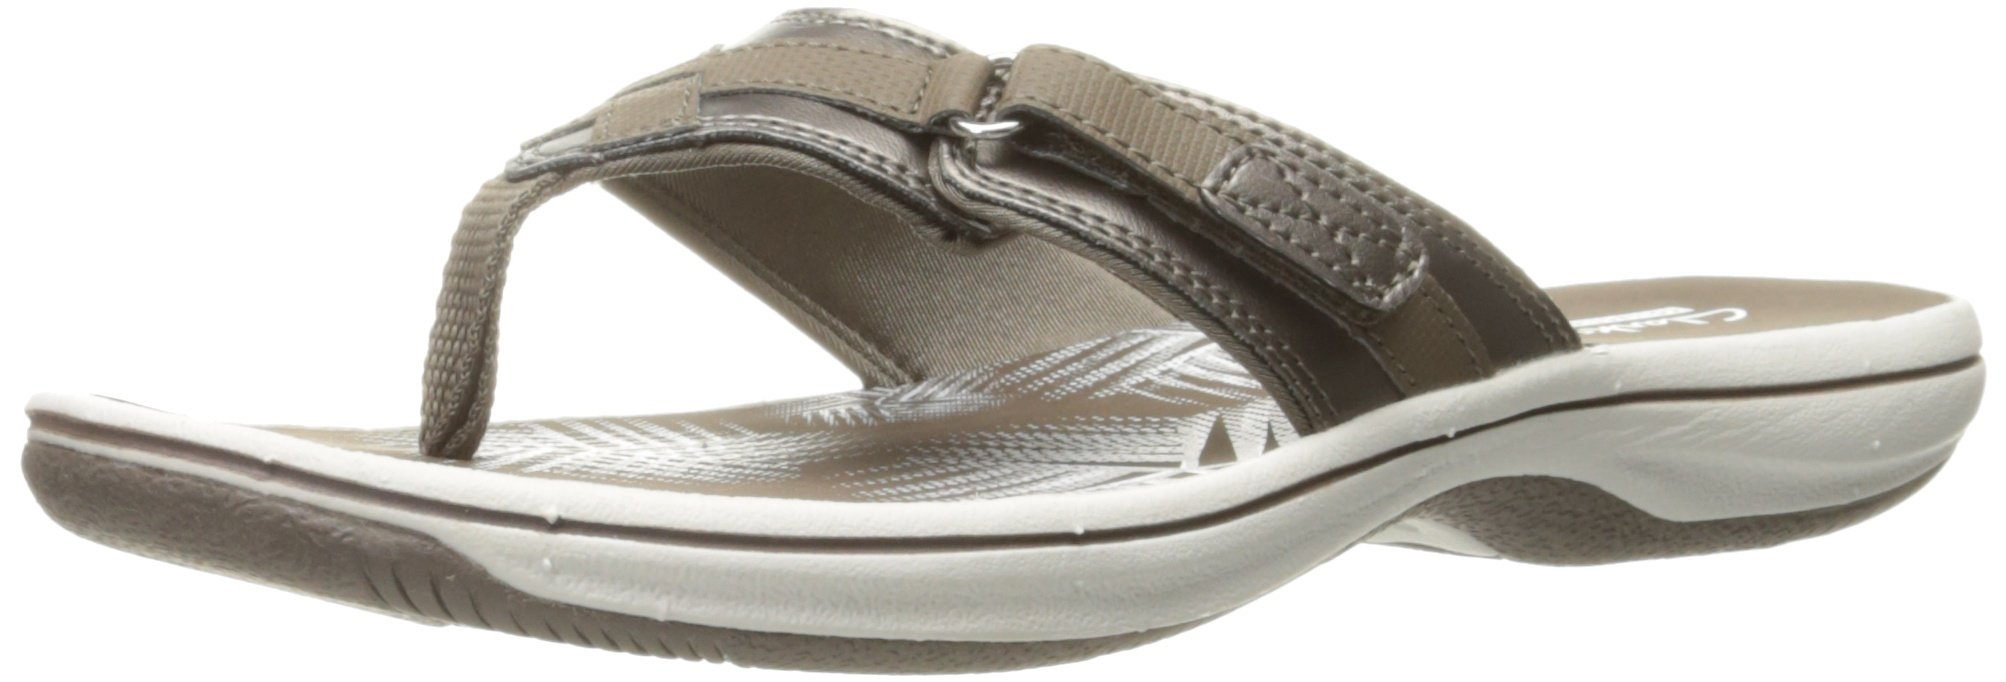 CLARKS Women's Breeze Sea Flip Flop, New Pewter Synthetic, 8 B(M) US